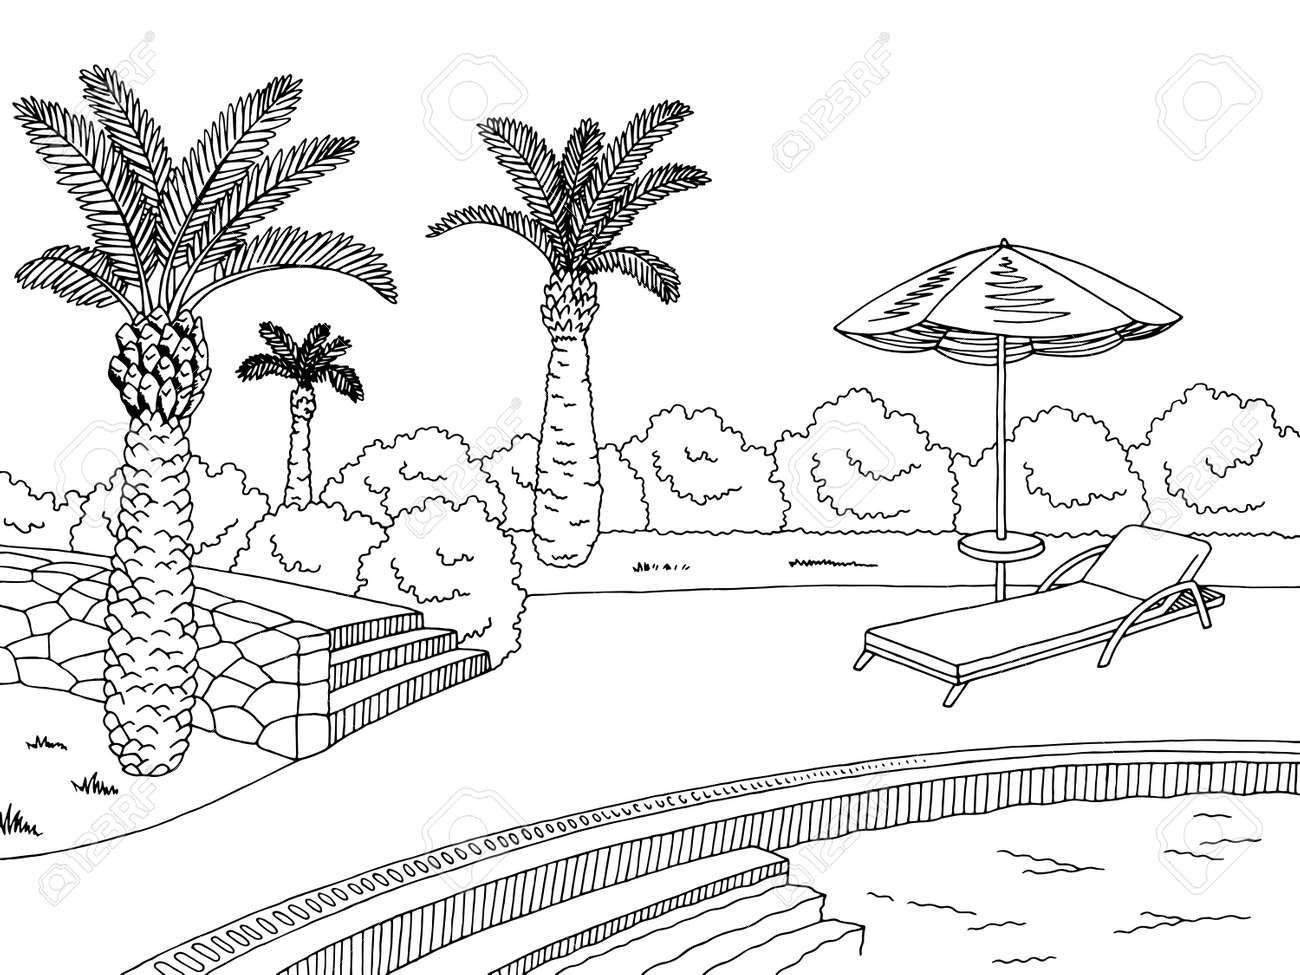 Swimming Pool Outline Source Graphic Black And White Sketch Illustration Vector